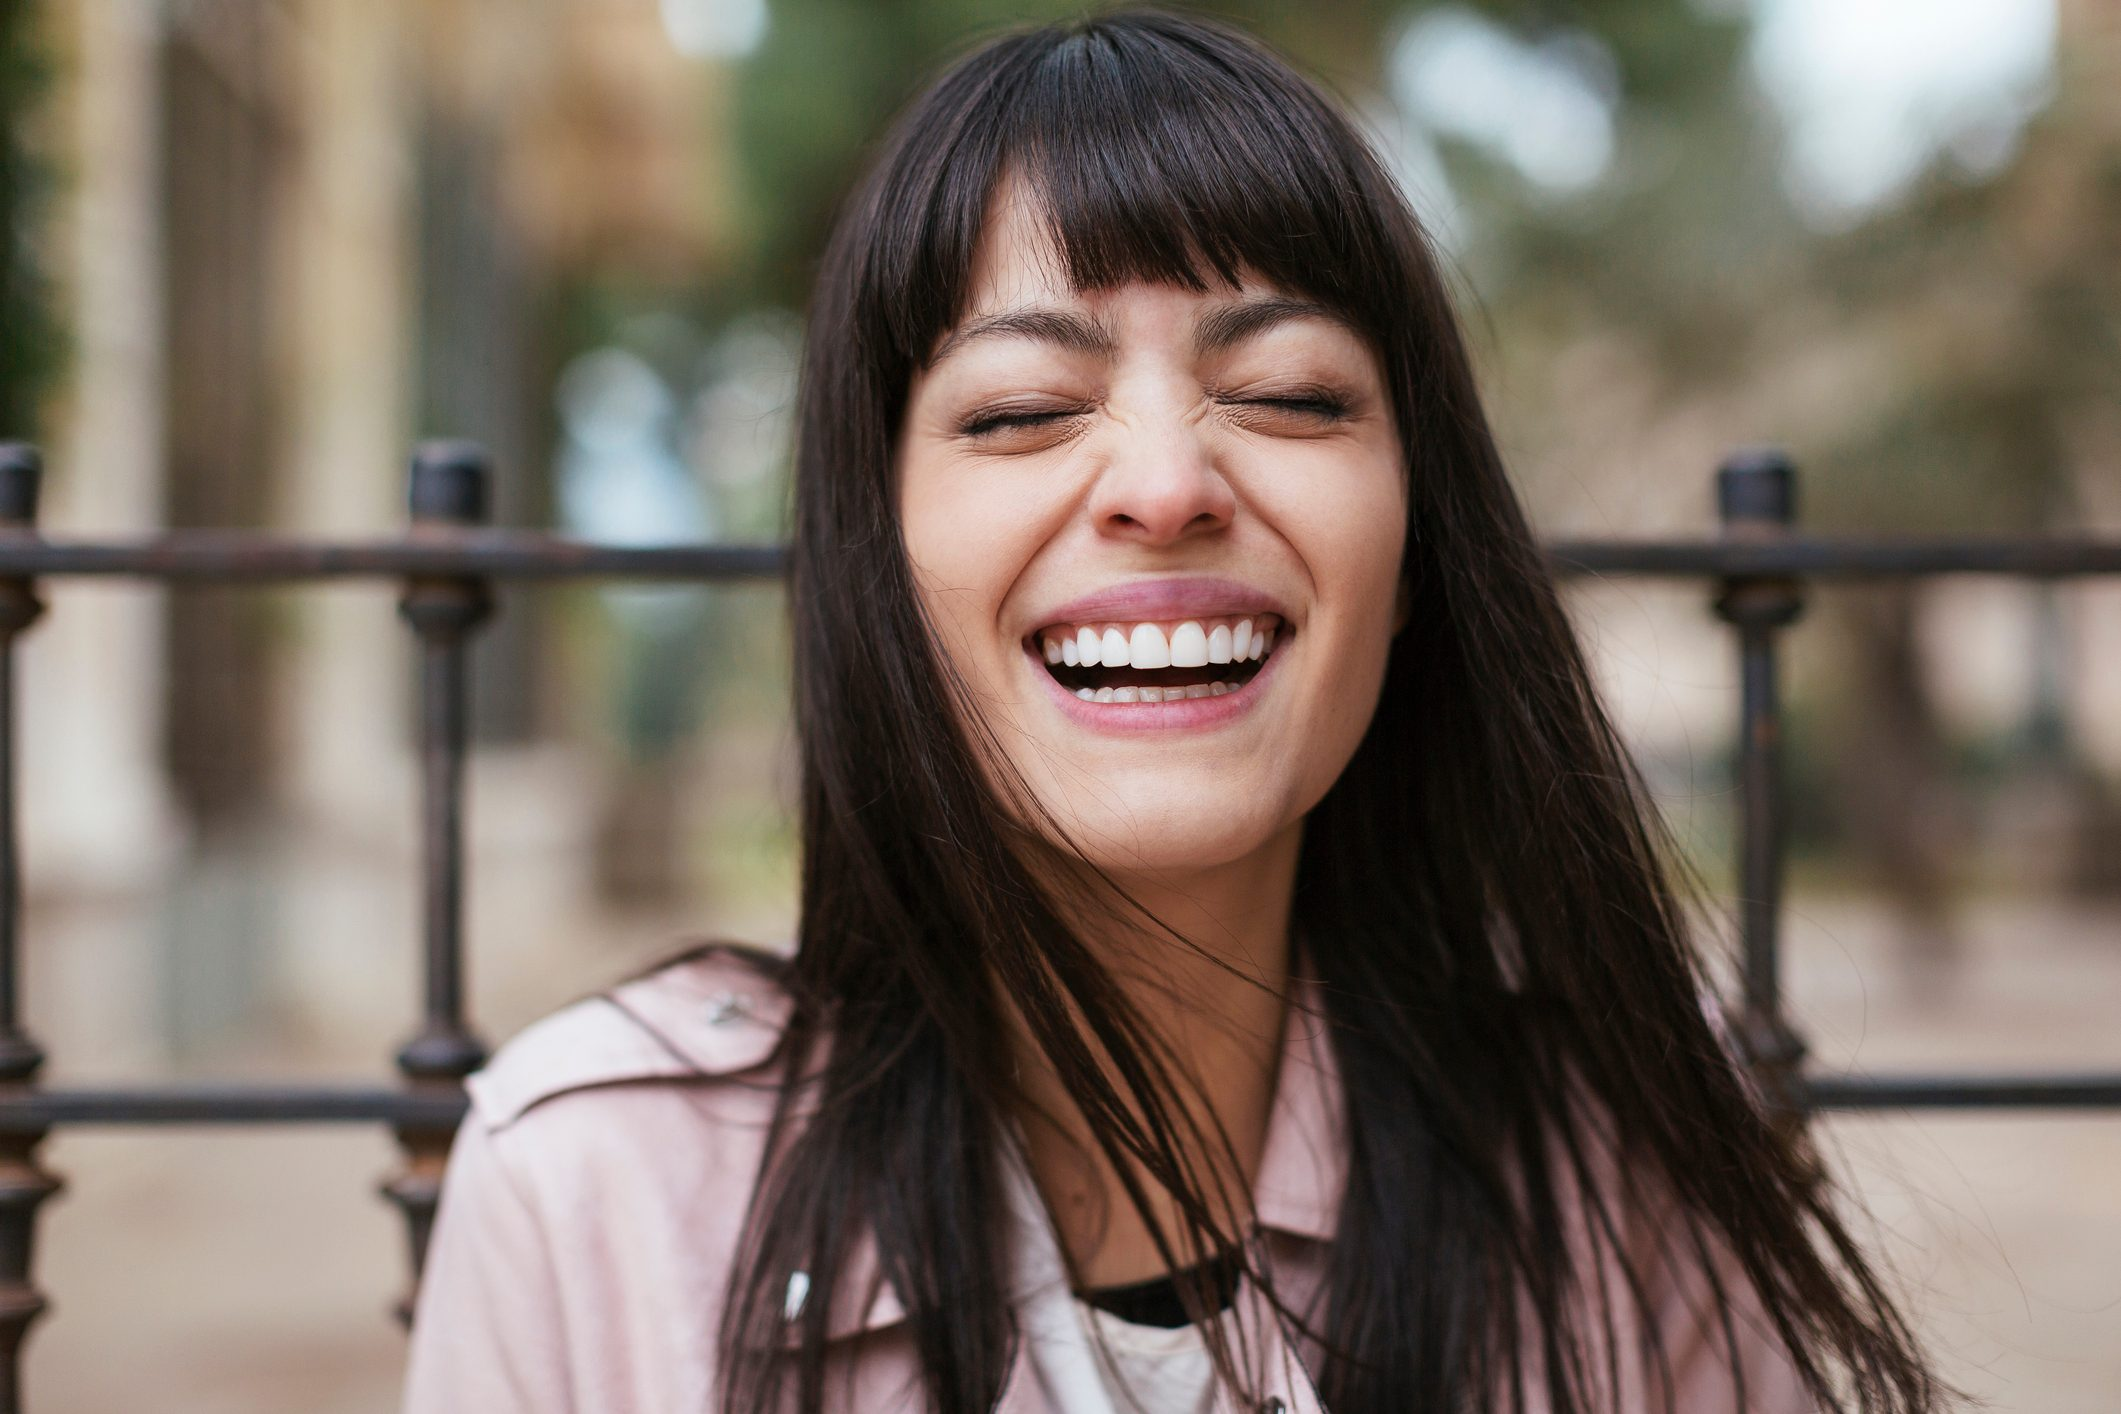 Portrait of laughing young woman outdoors